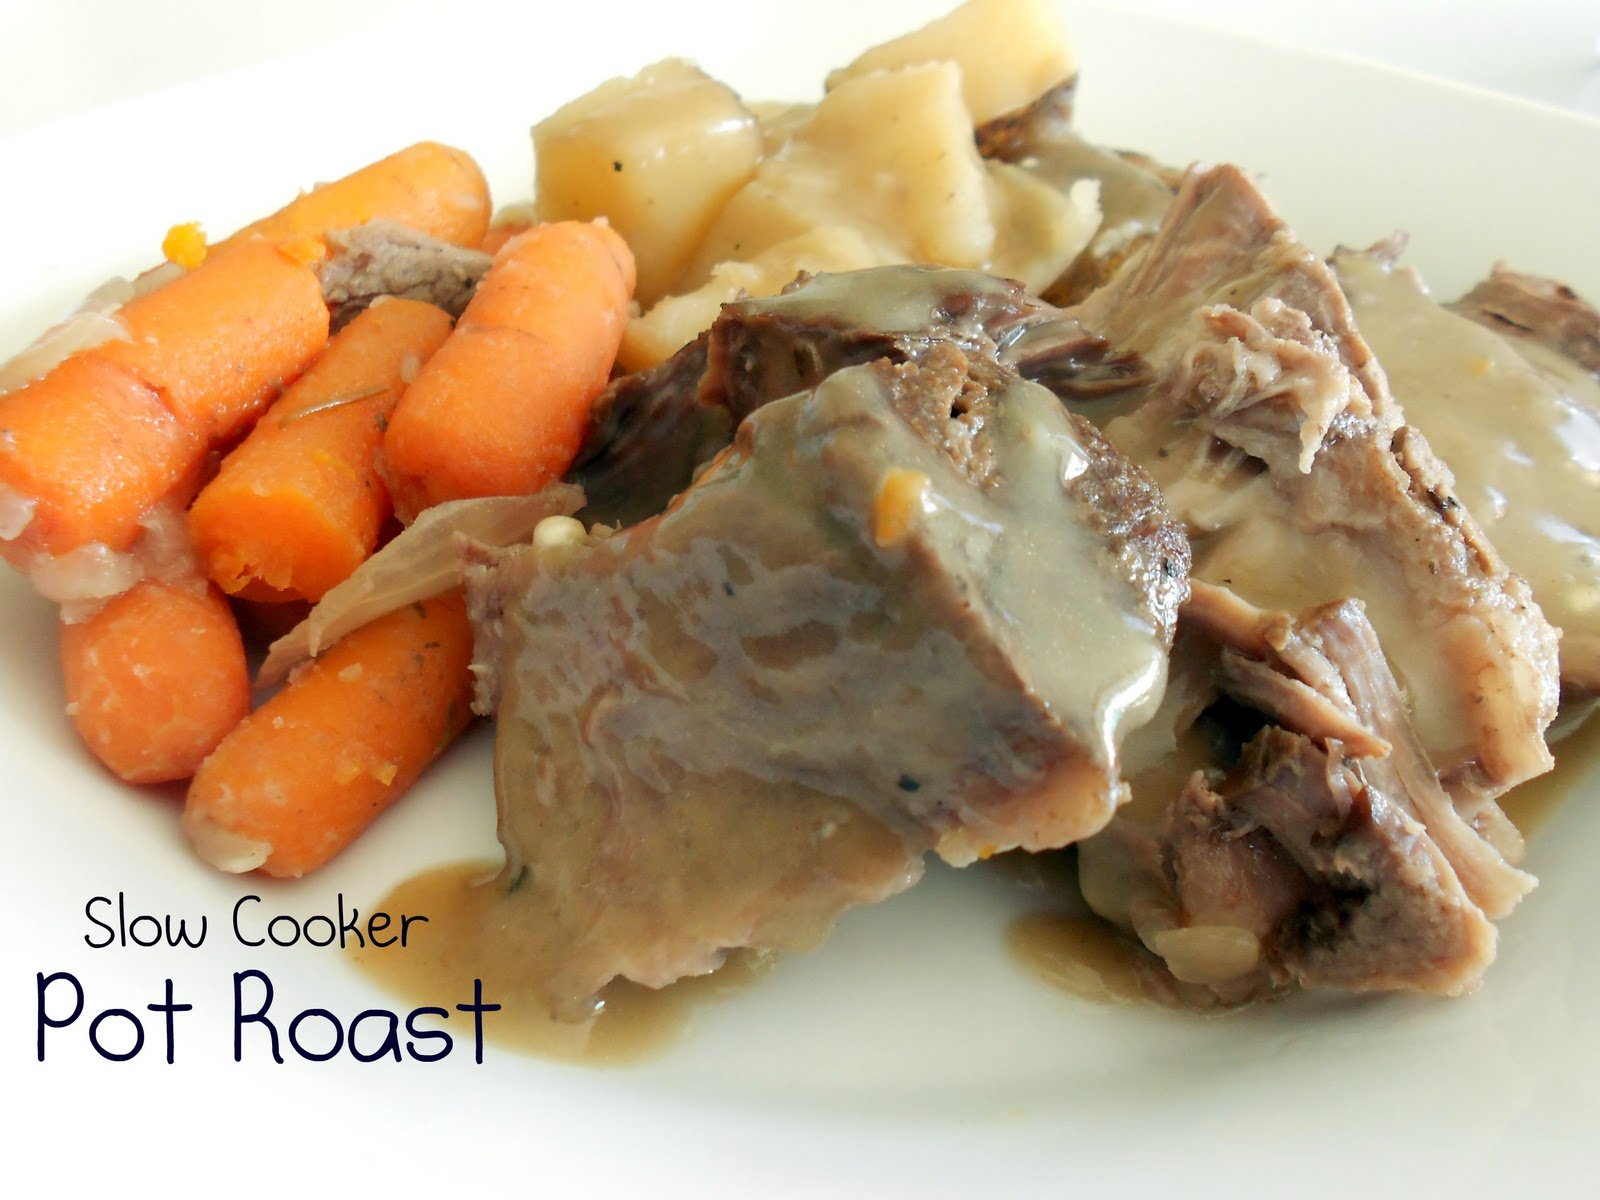 pot roast roast chicken pot roast sandwich mom s roast turkey how to ...